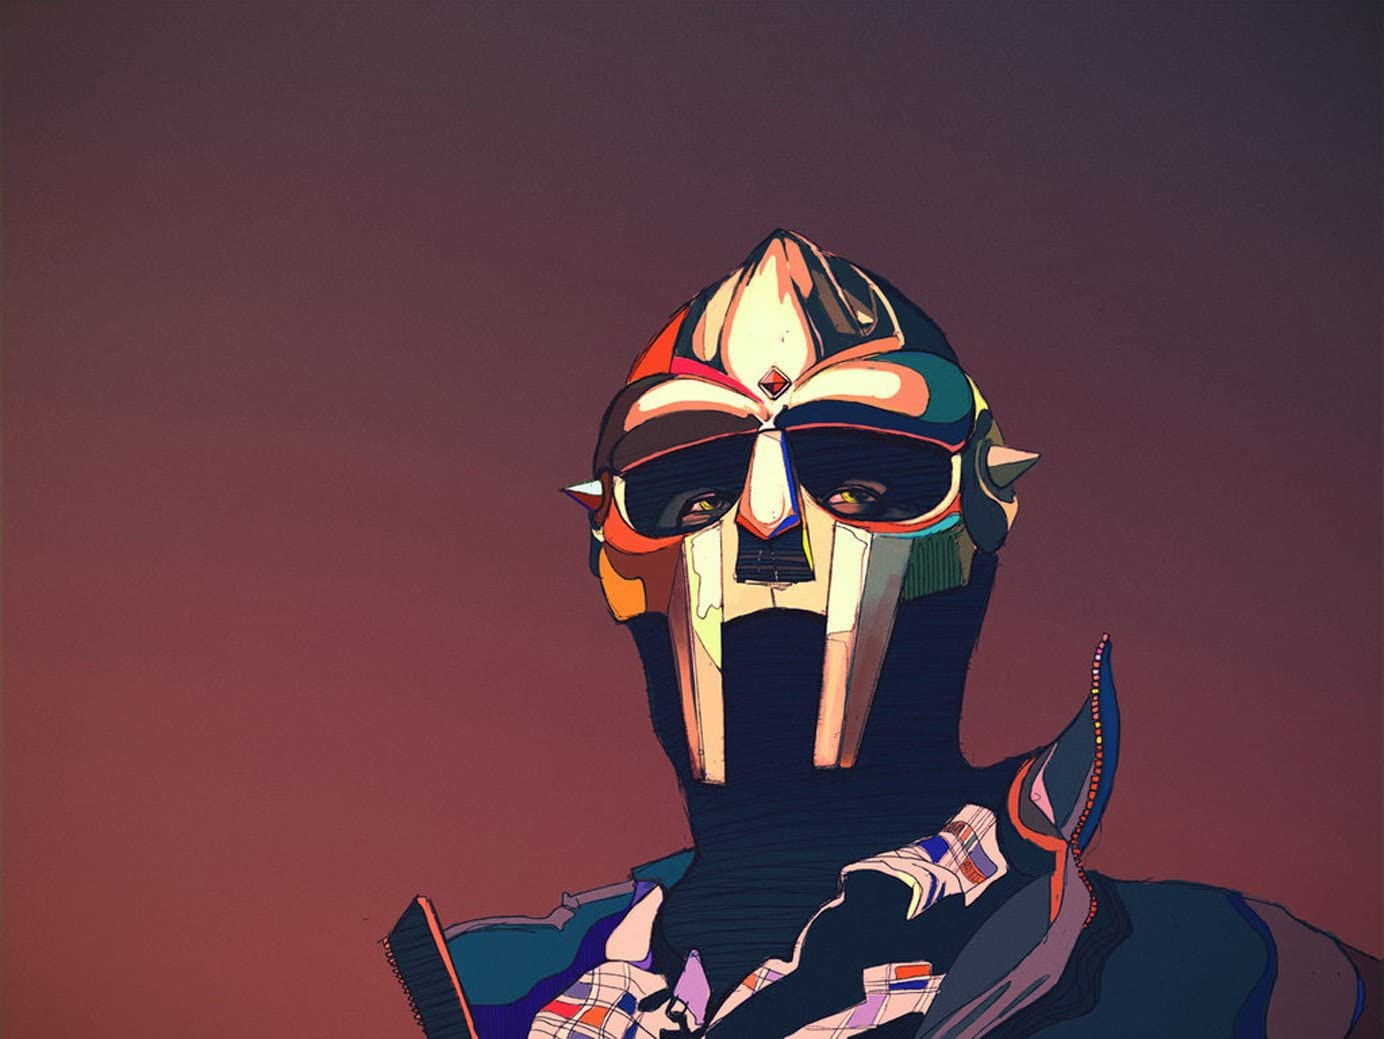 MF Doom Posters Wall Poster Print Huawuque MF Doom Poster Standard Size 18-Inches by 24-Inches